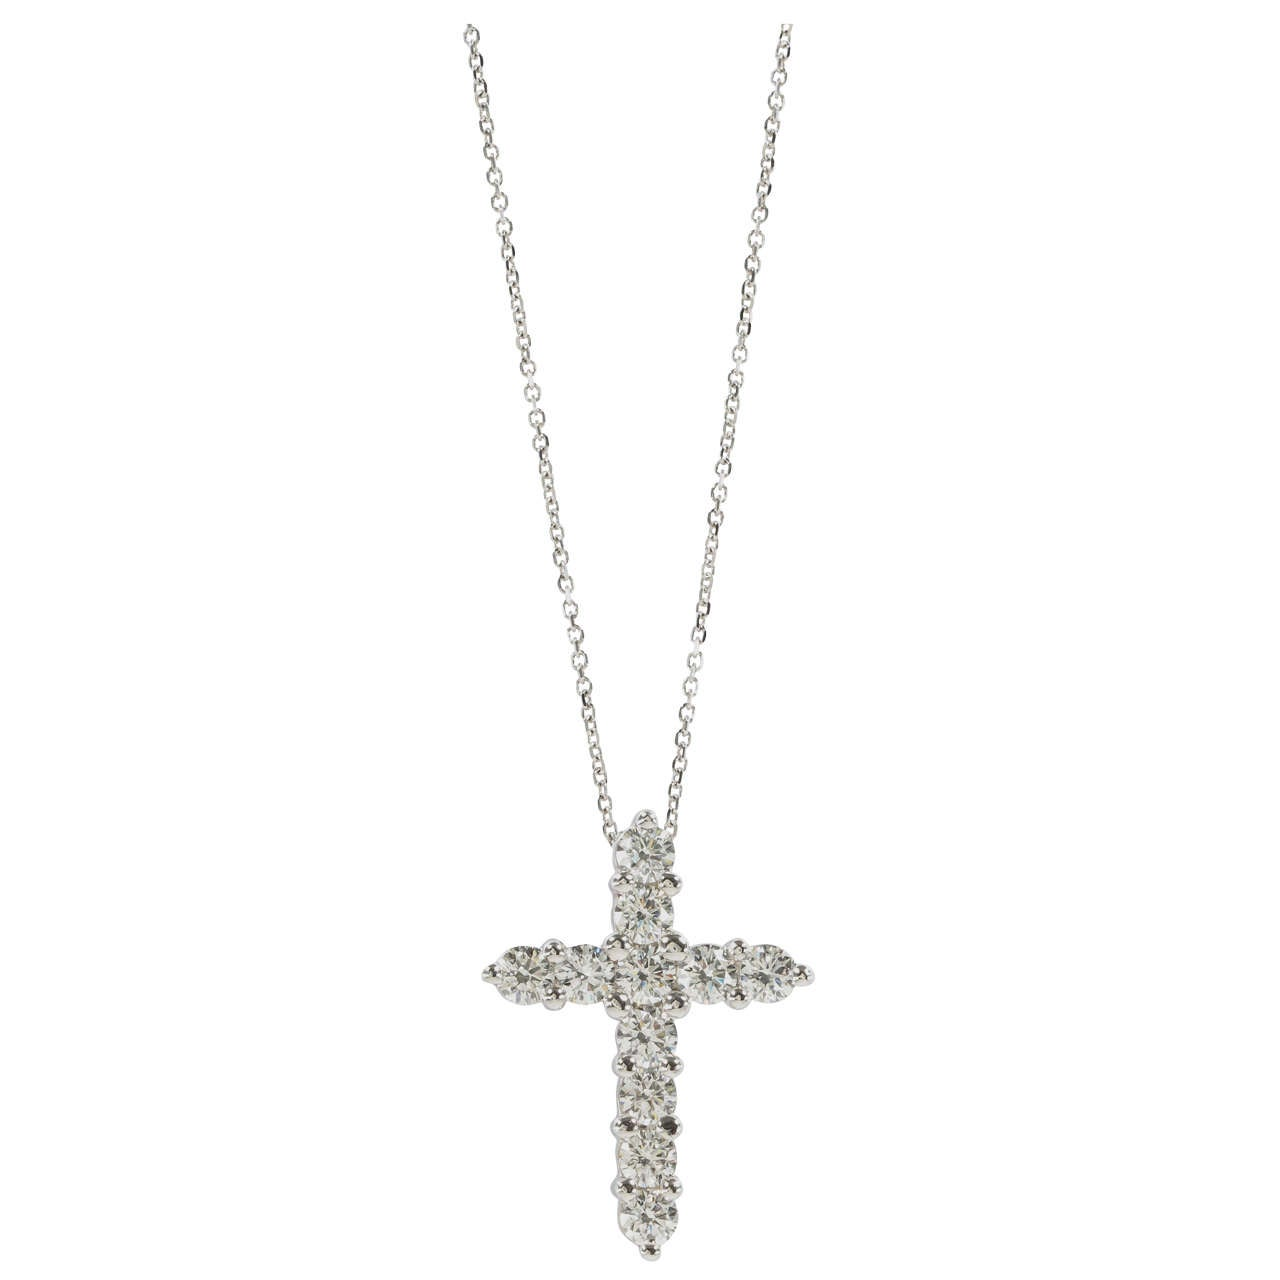 316a6c7b9 Classic Diamond Cross Pendant on Chain For Sale at 1stdibs